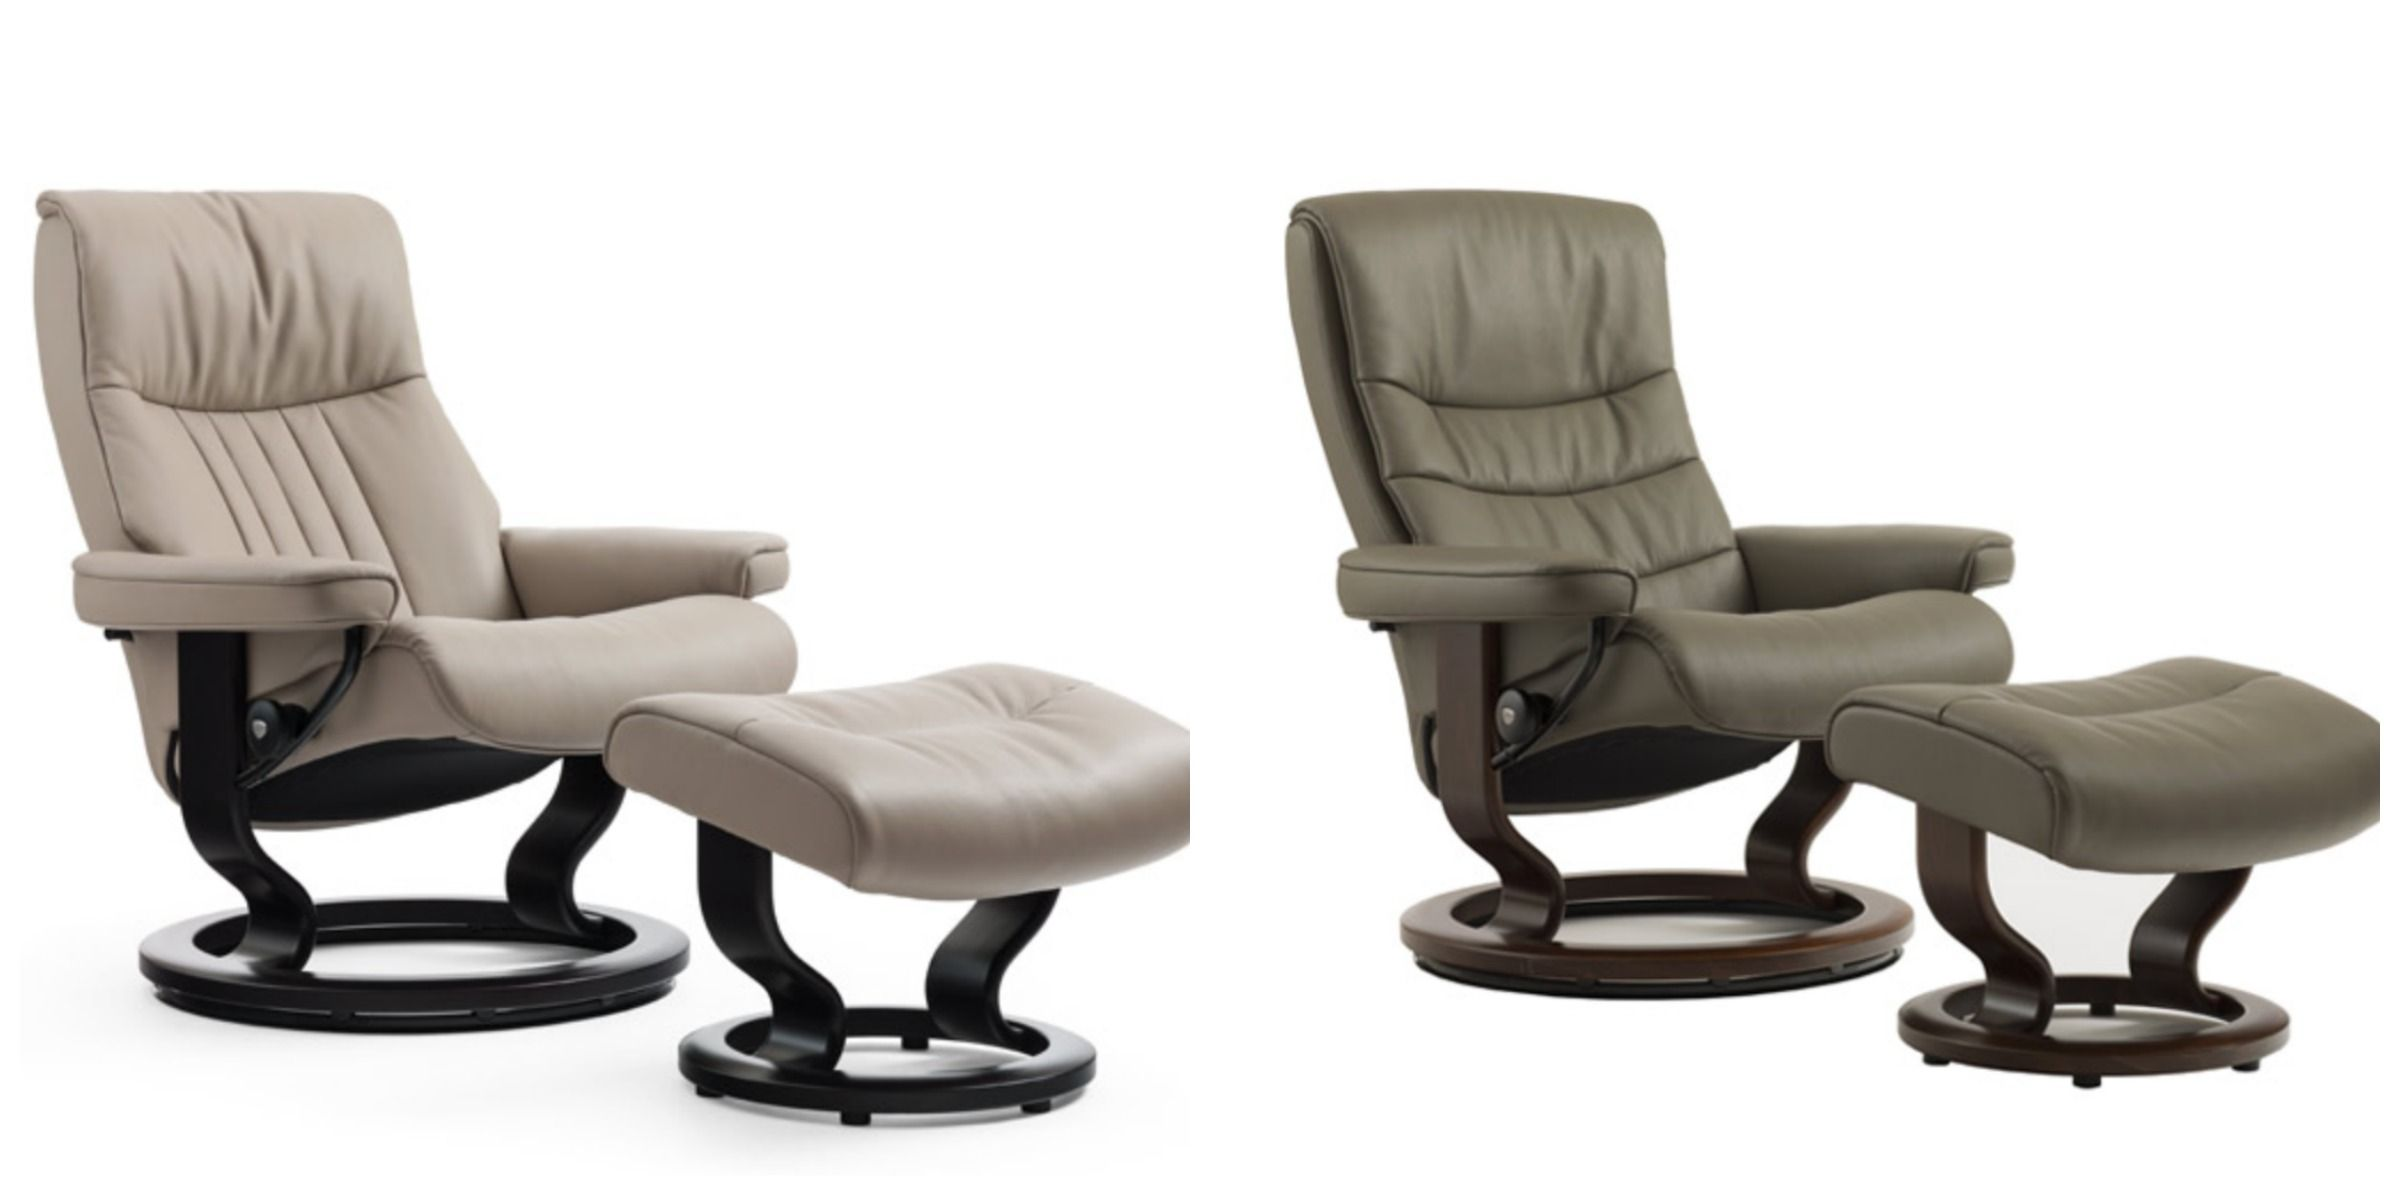 Stressless Nordic And Stressless Crown Stressless Furniture